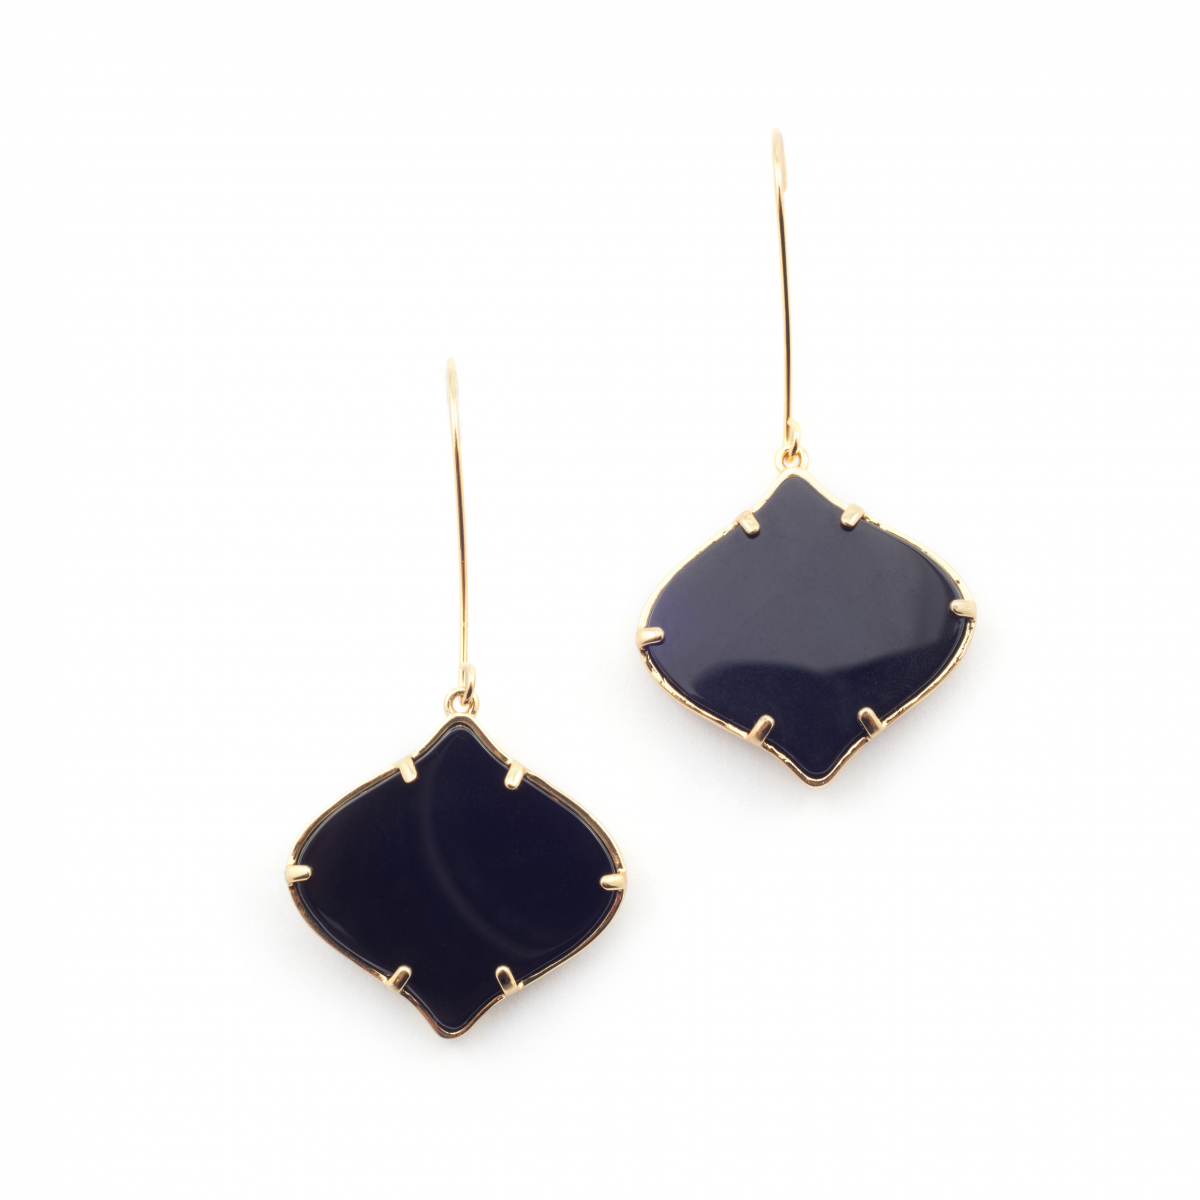 Arabesque Filigree Earrings - Onyx